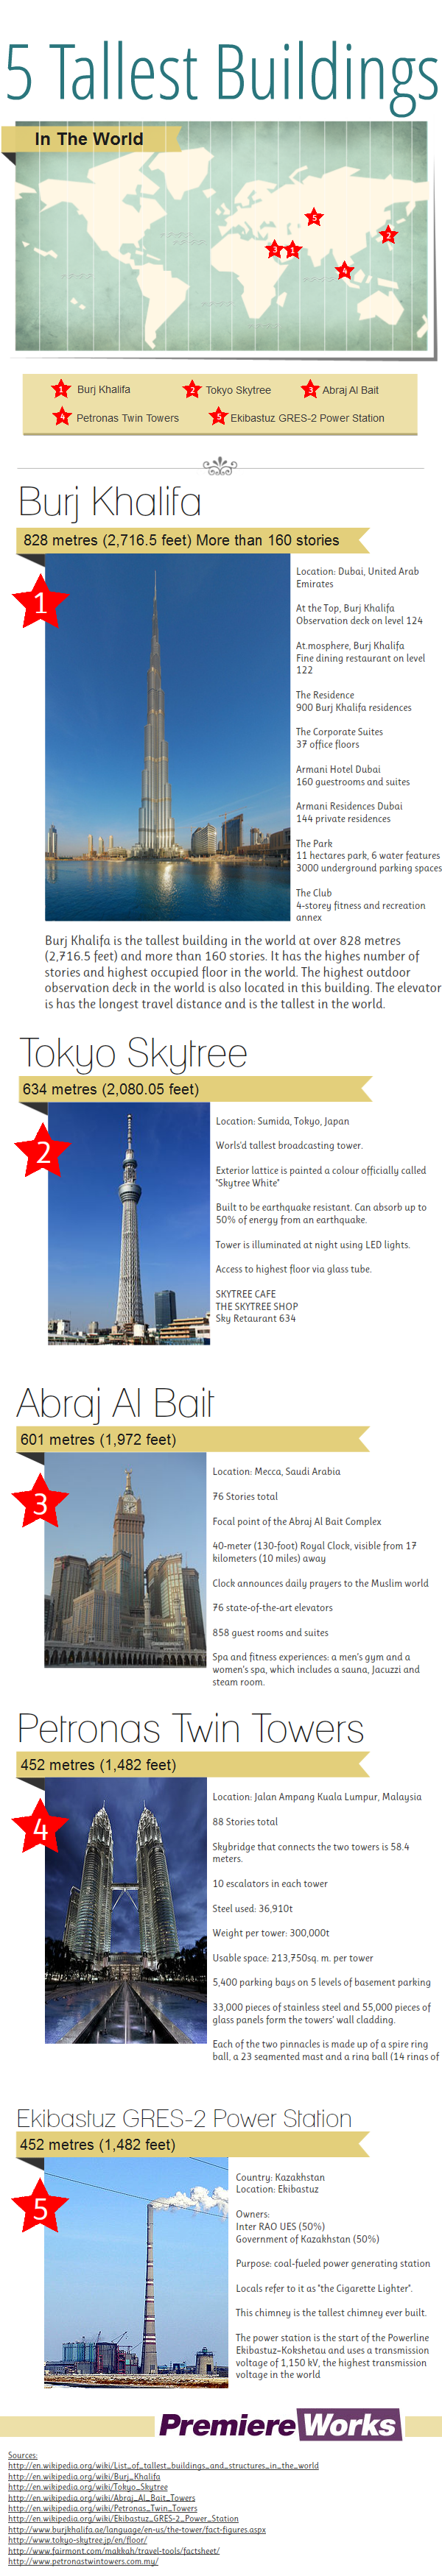 5 Tallest Buildings In The World - Infographic